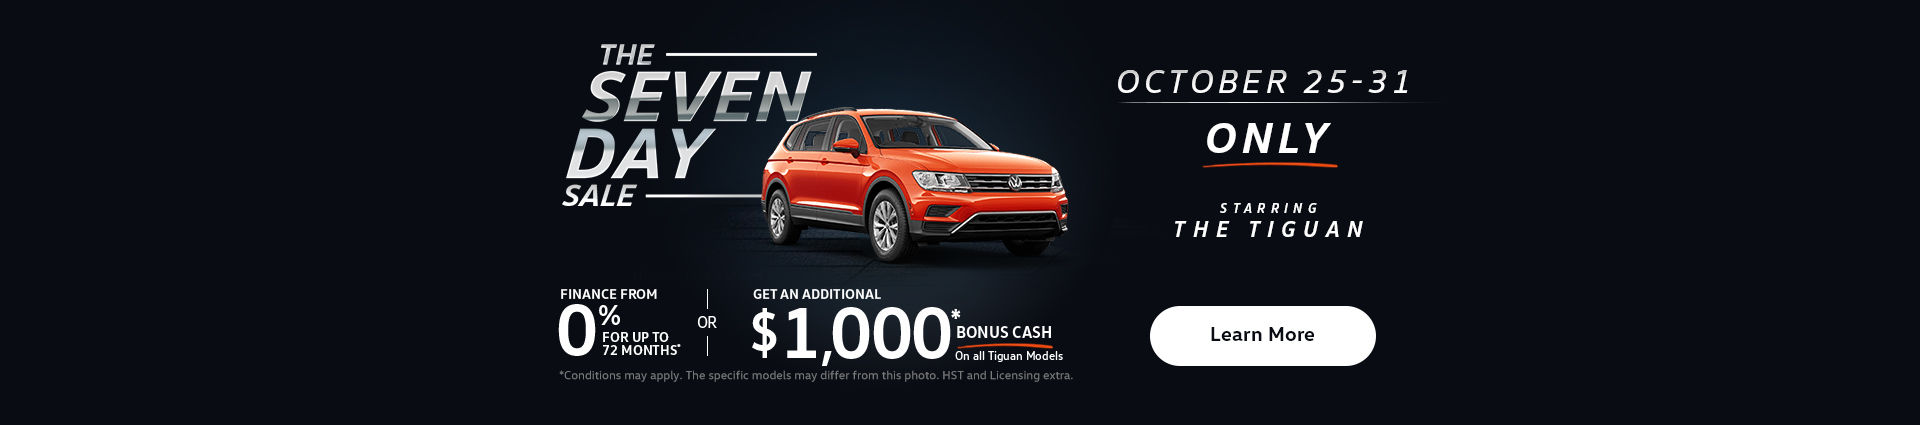 tiguan 7 day sale